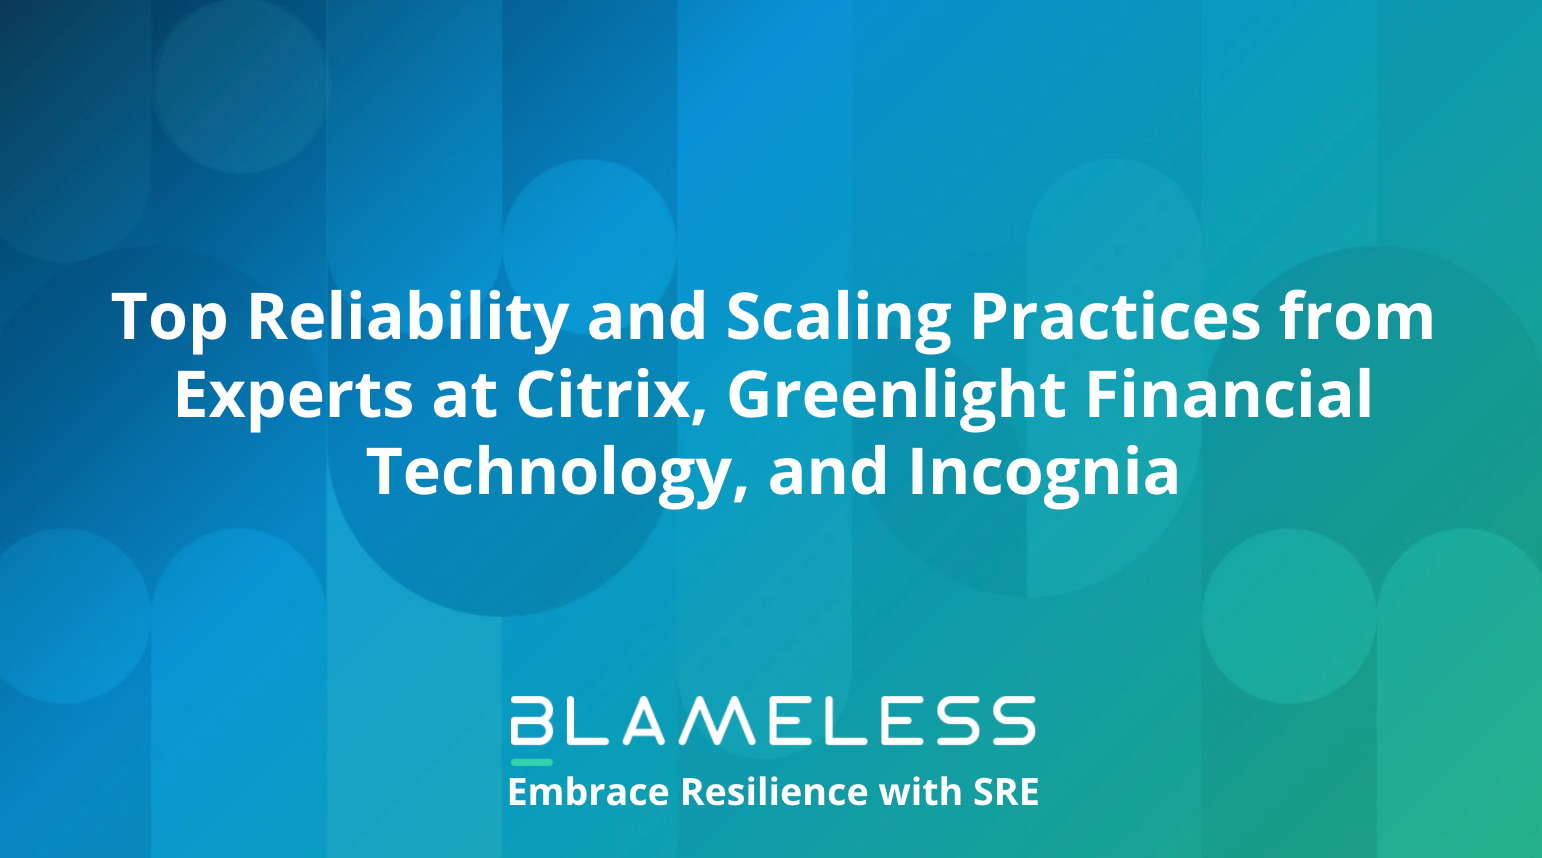 Top Reliability and Scaling Practices from Experts at Citrix, Greenlight Financial Technology, and Incognia